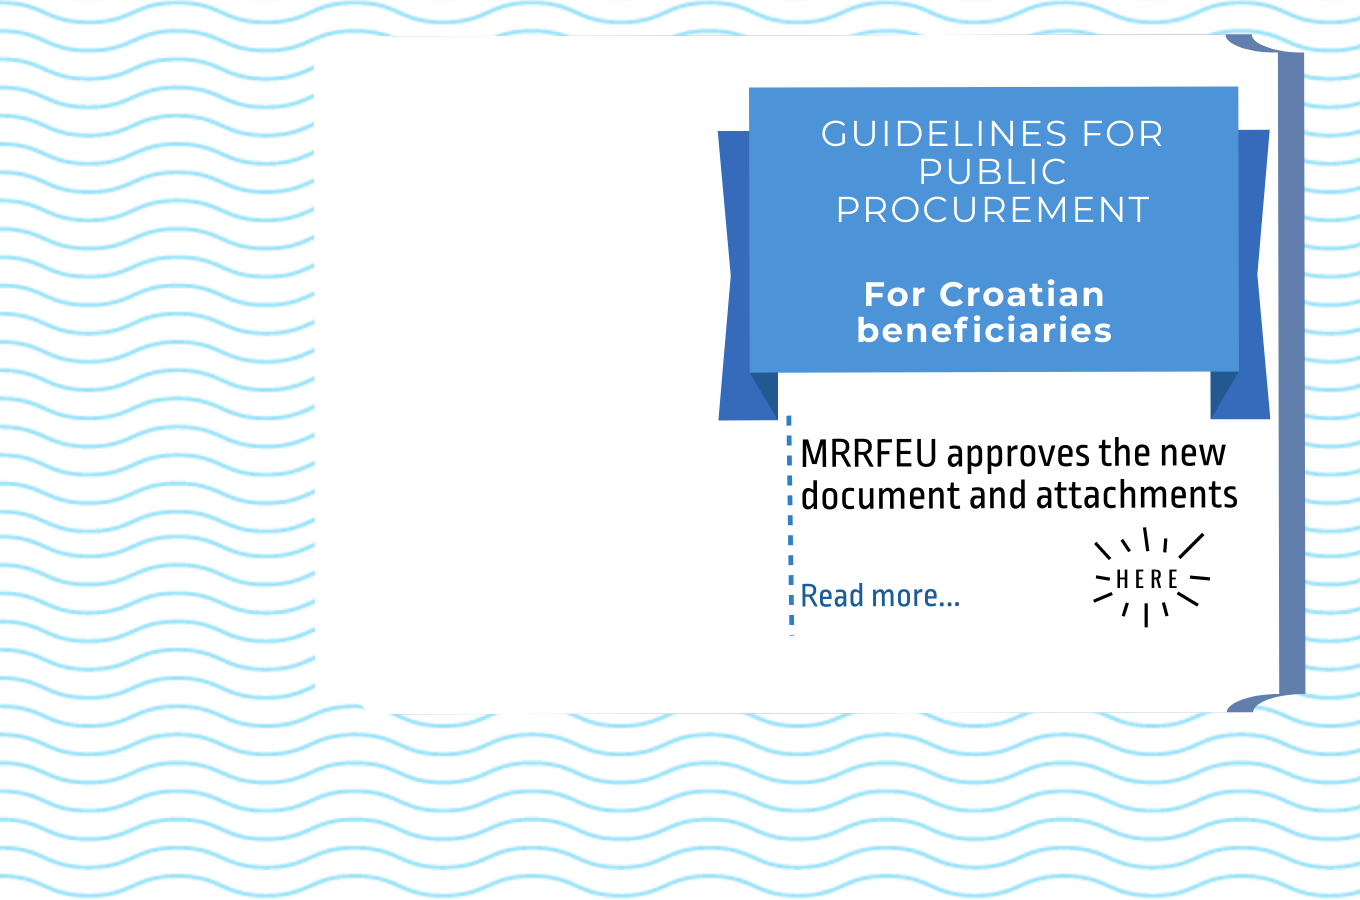 Guidelines for the Public Procurement for Croatian beneficiaries